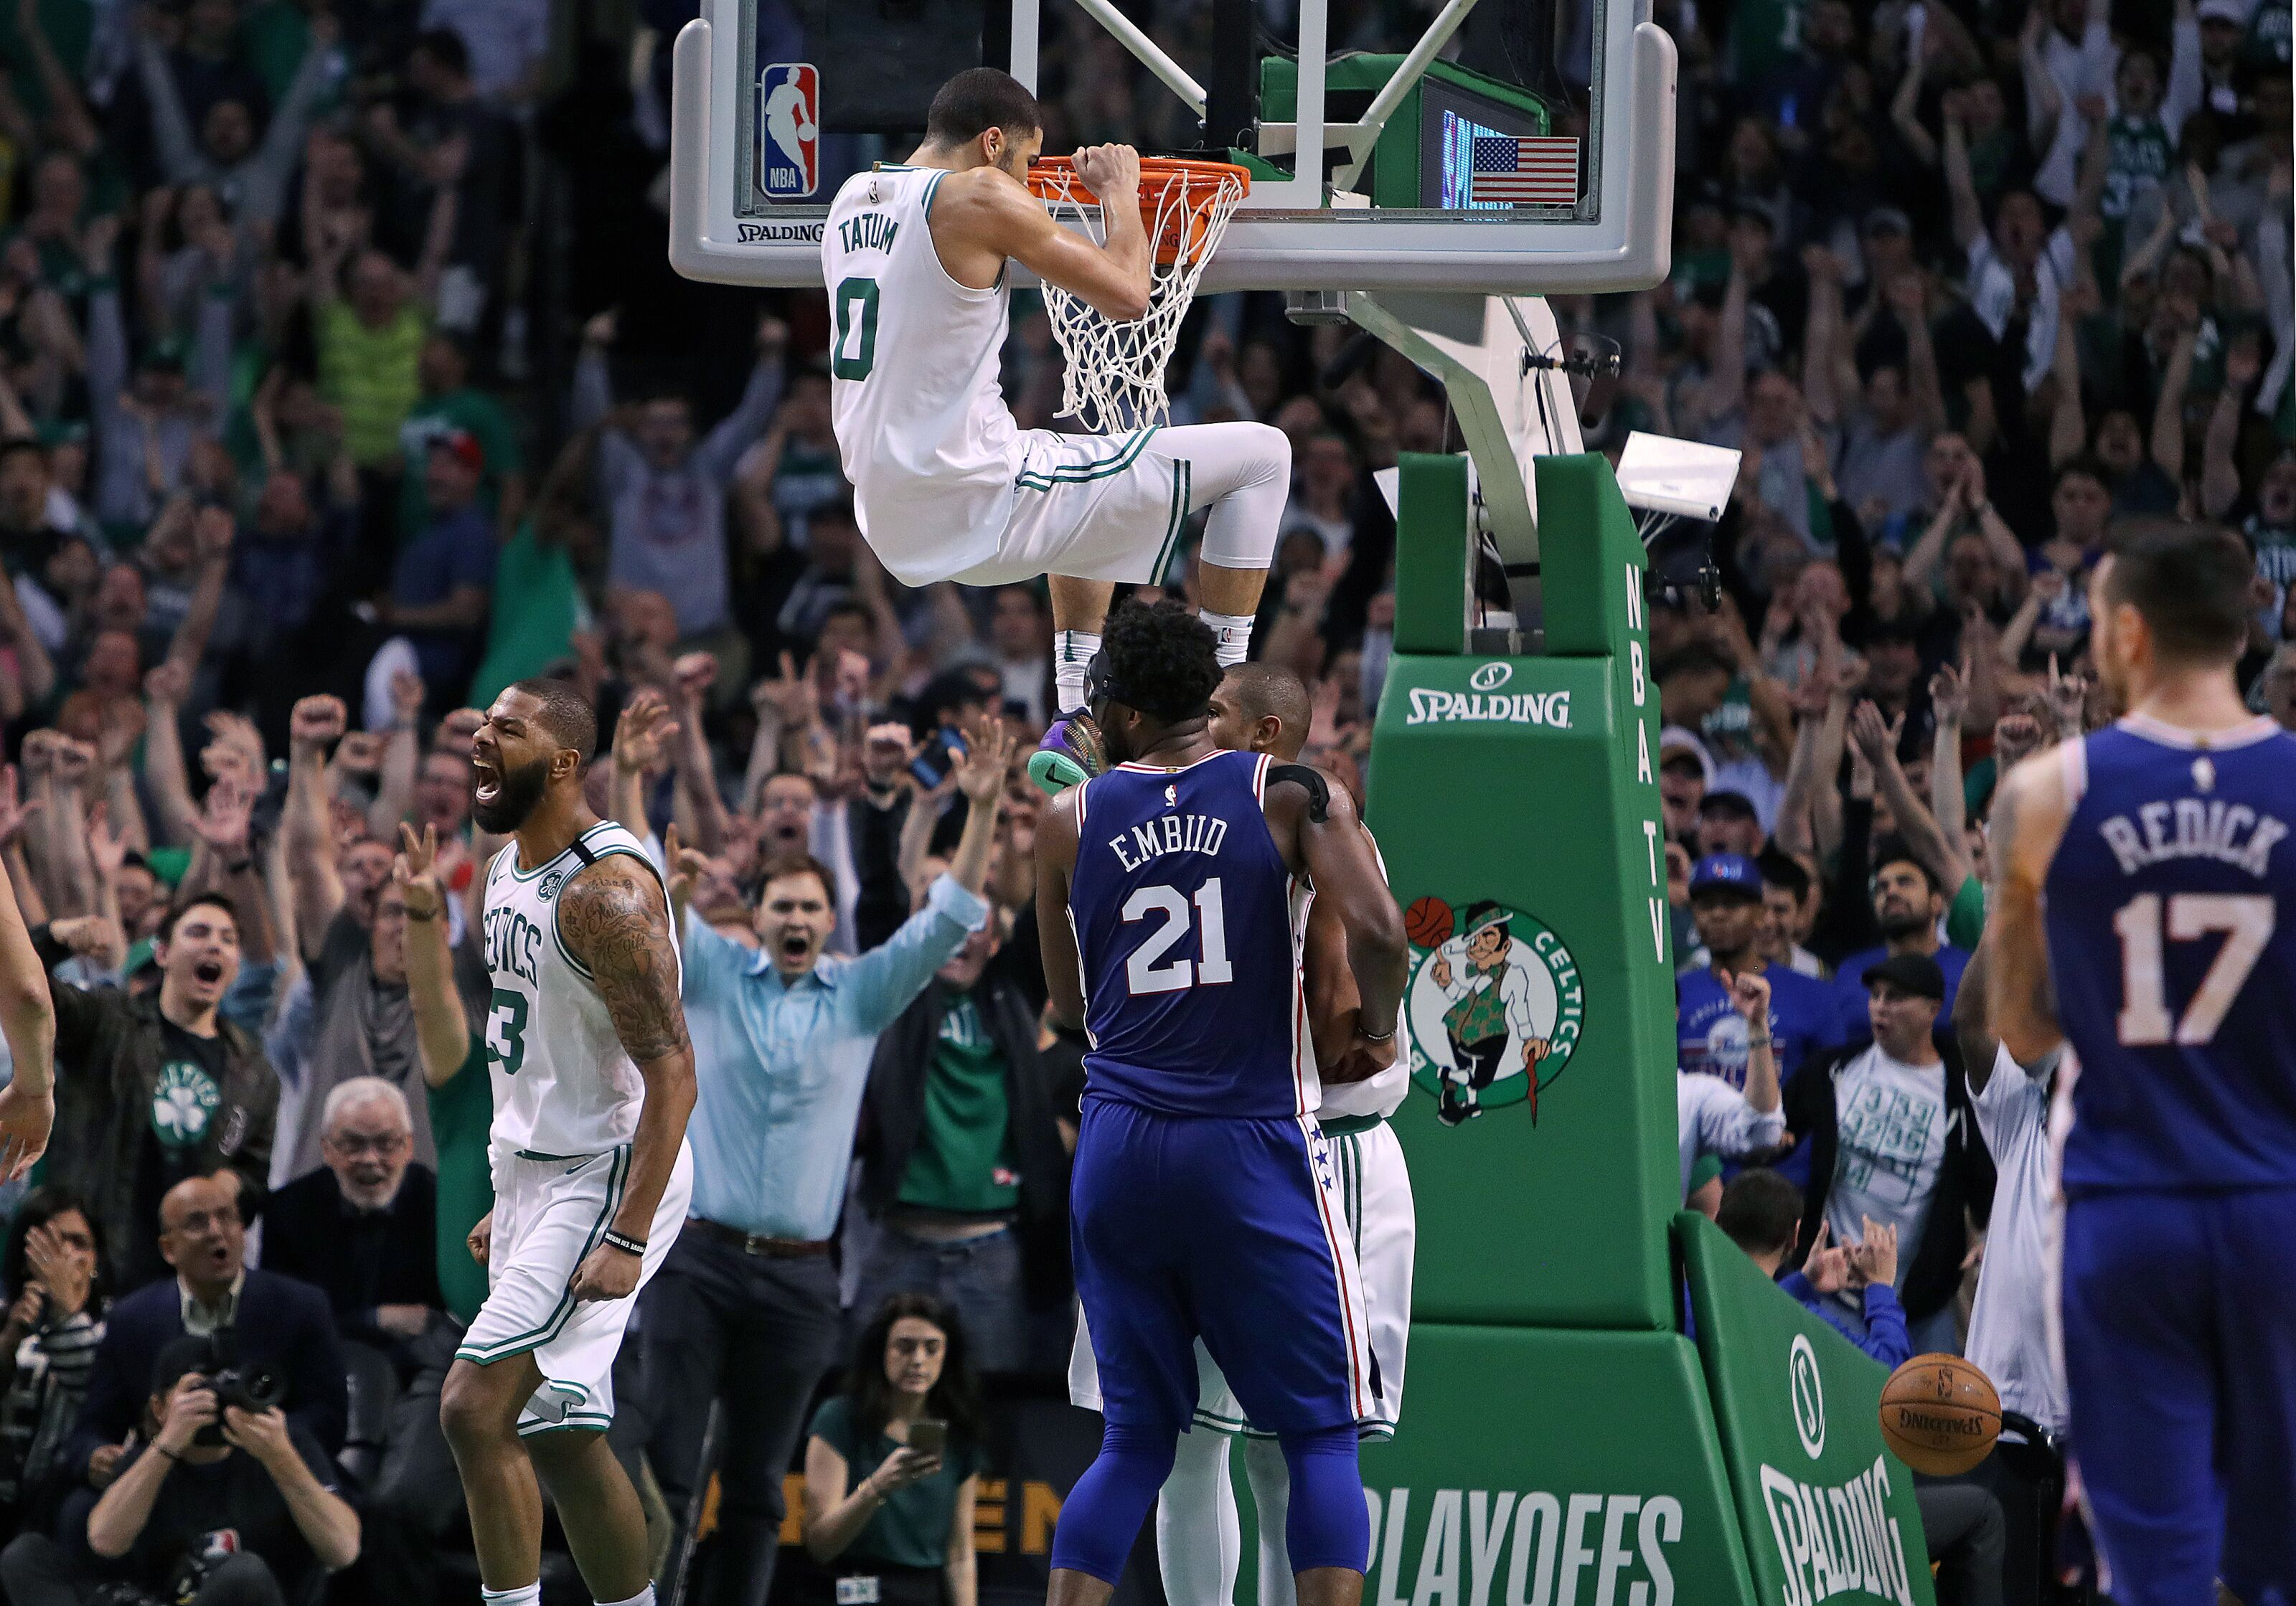 Celtics must use home court advantage to caintain Mcconnell